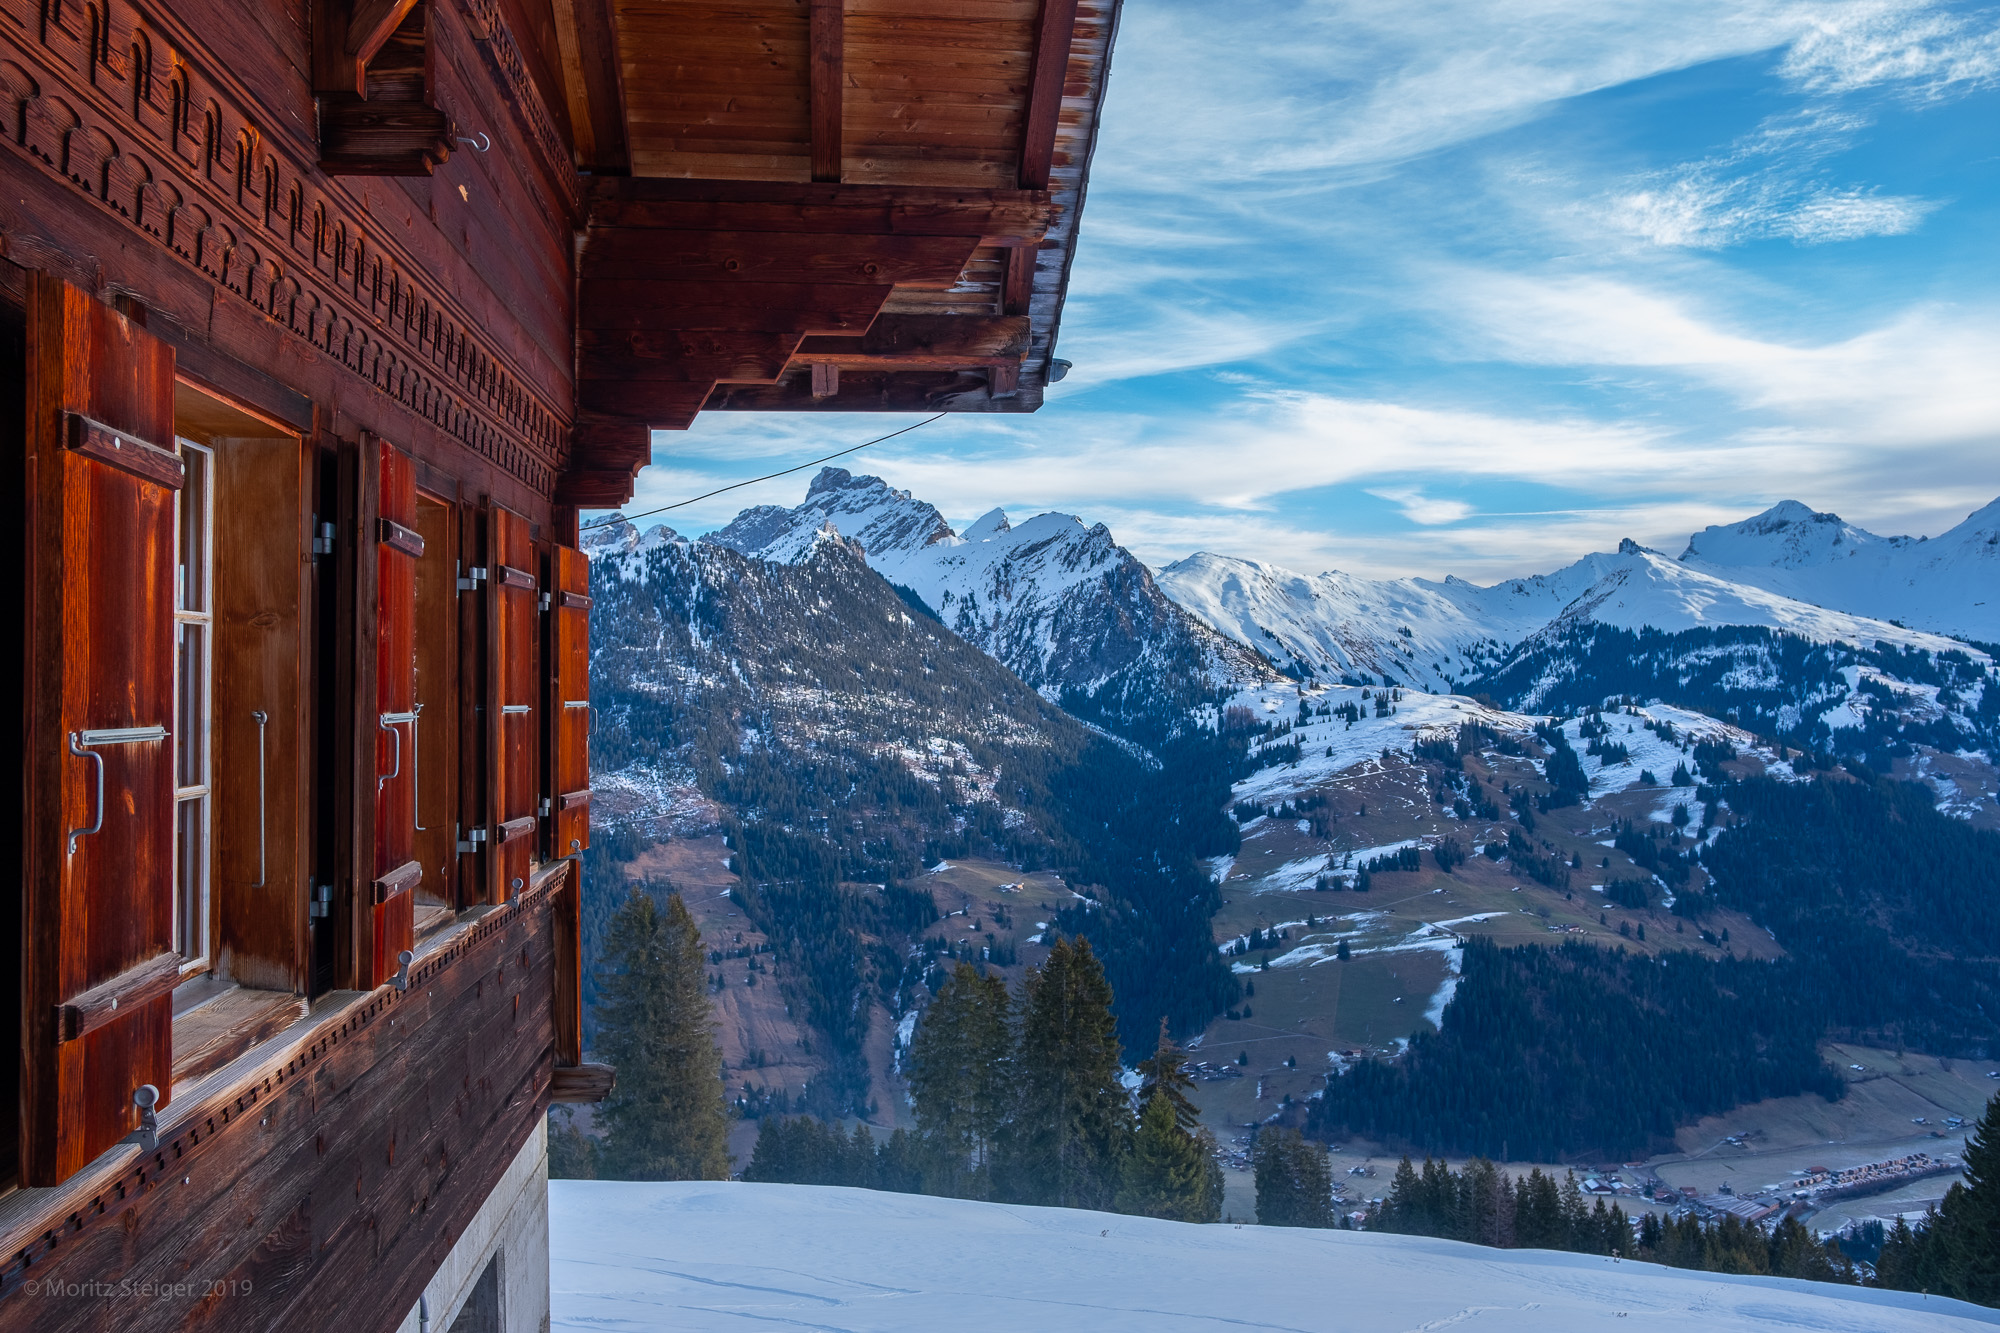 Chalet, Bernese mountains